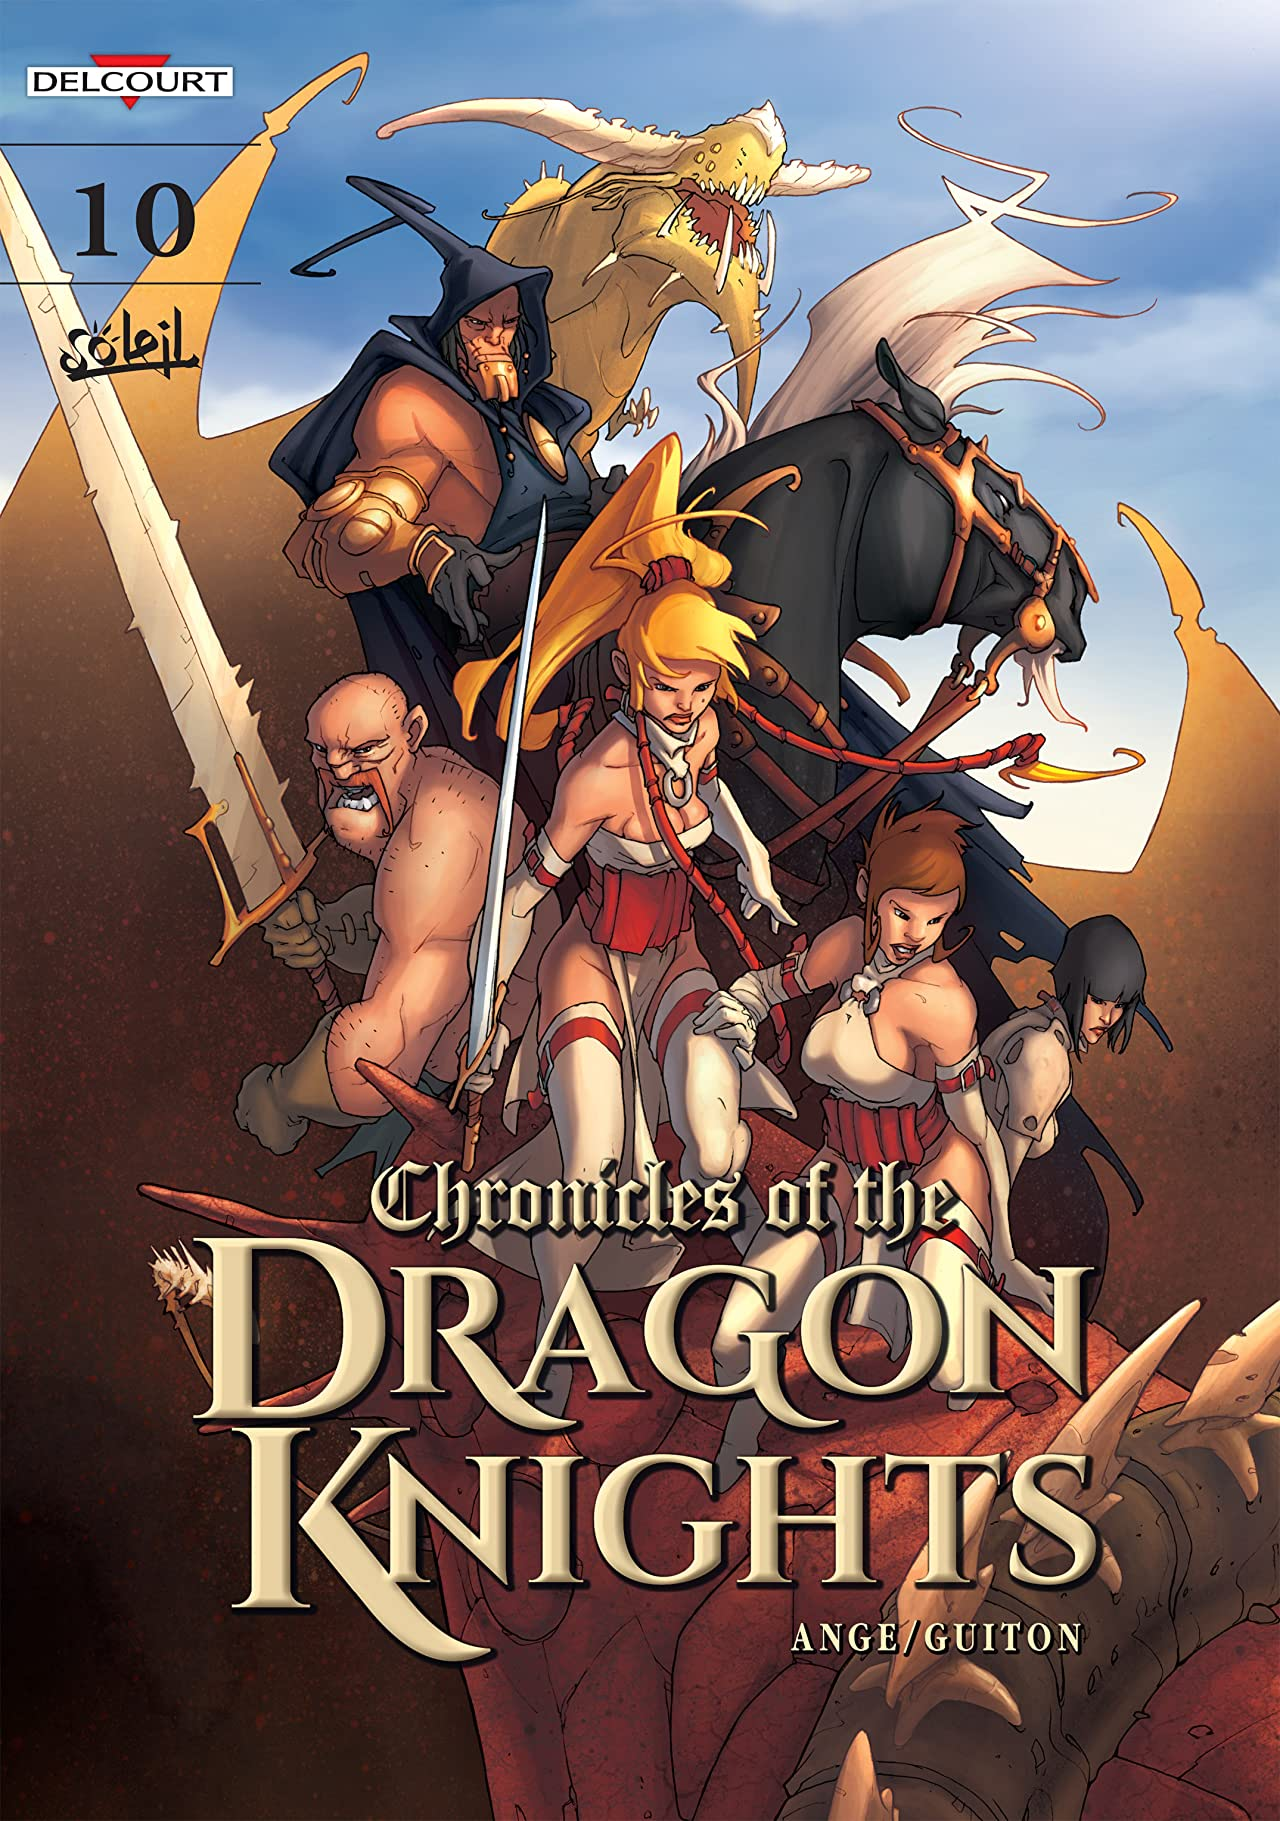 Chronicles Of The Dragon Knights Vol. 10: Toward the Light